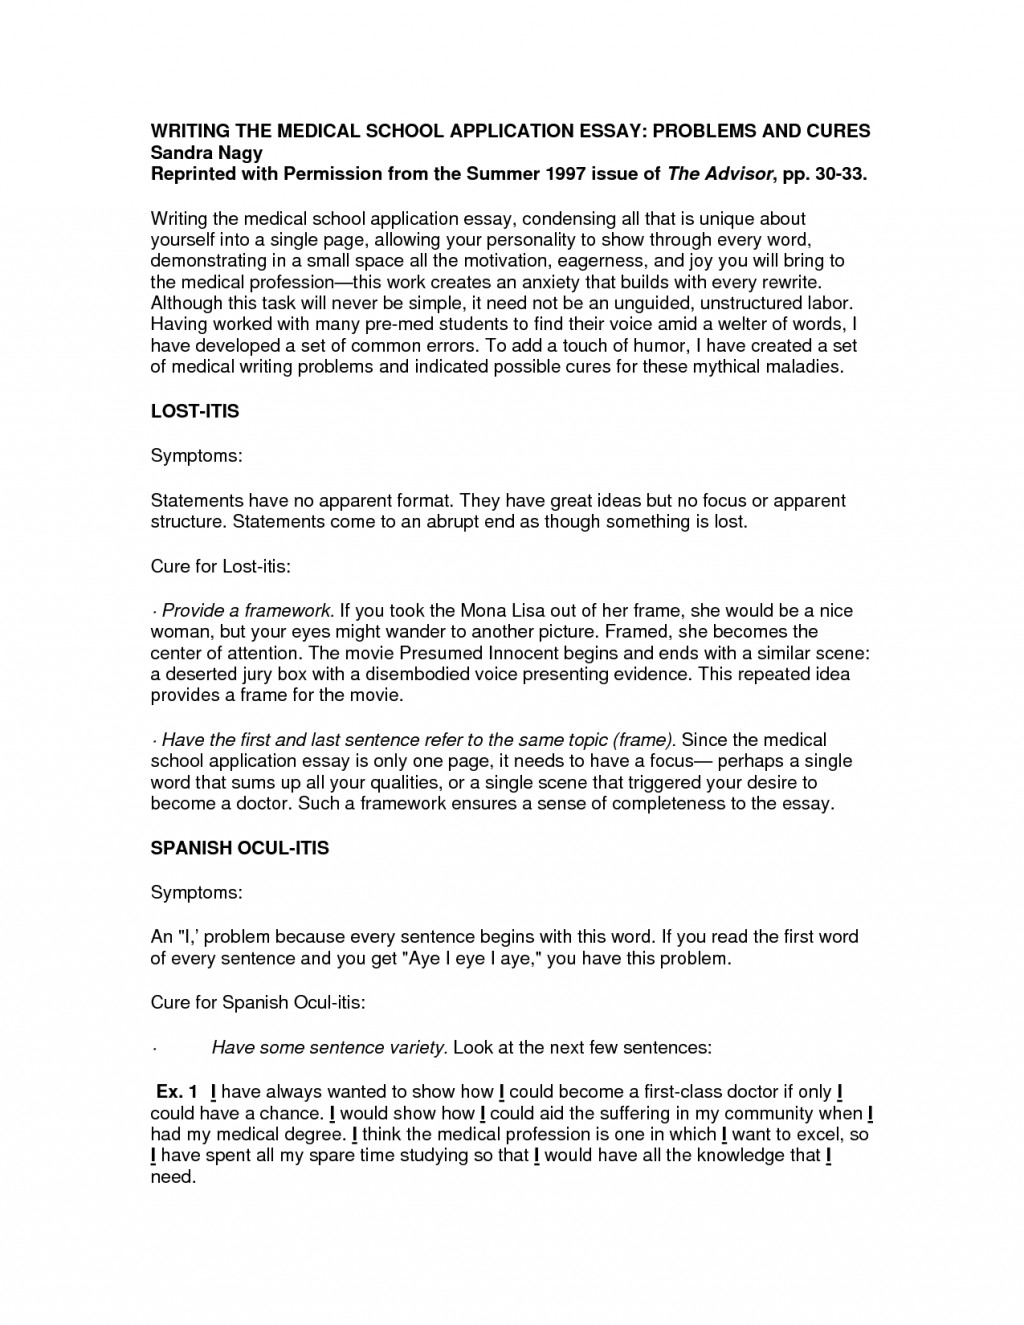 013 Osteopathic Medical School Essay Sample Arqoexilfu Awful Large